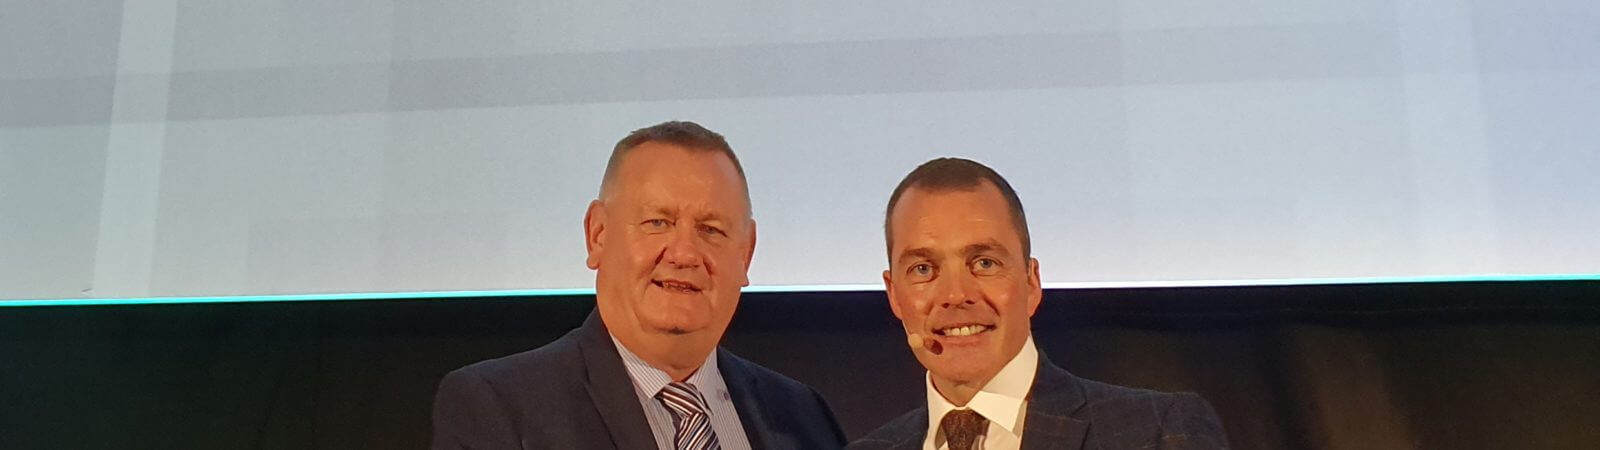 Russell Armer site manager collects national quality award